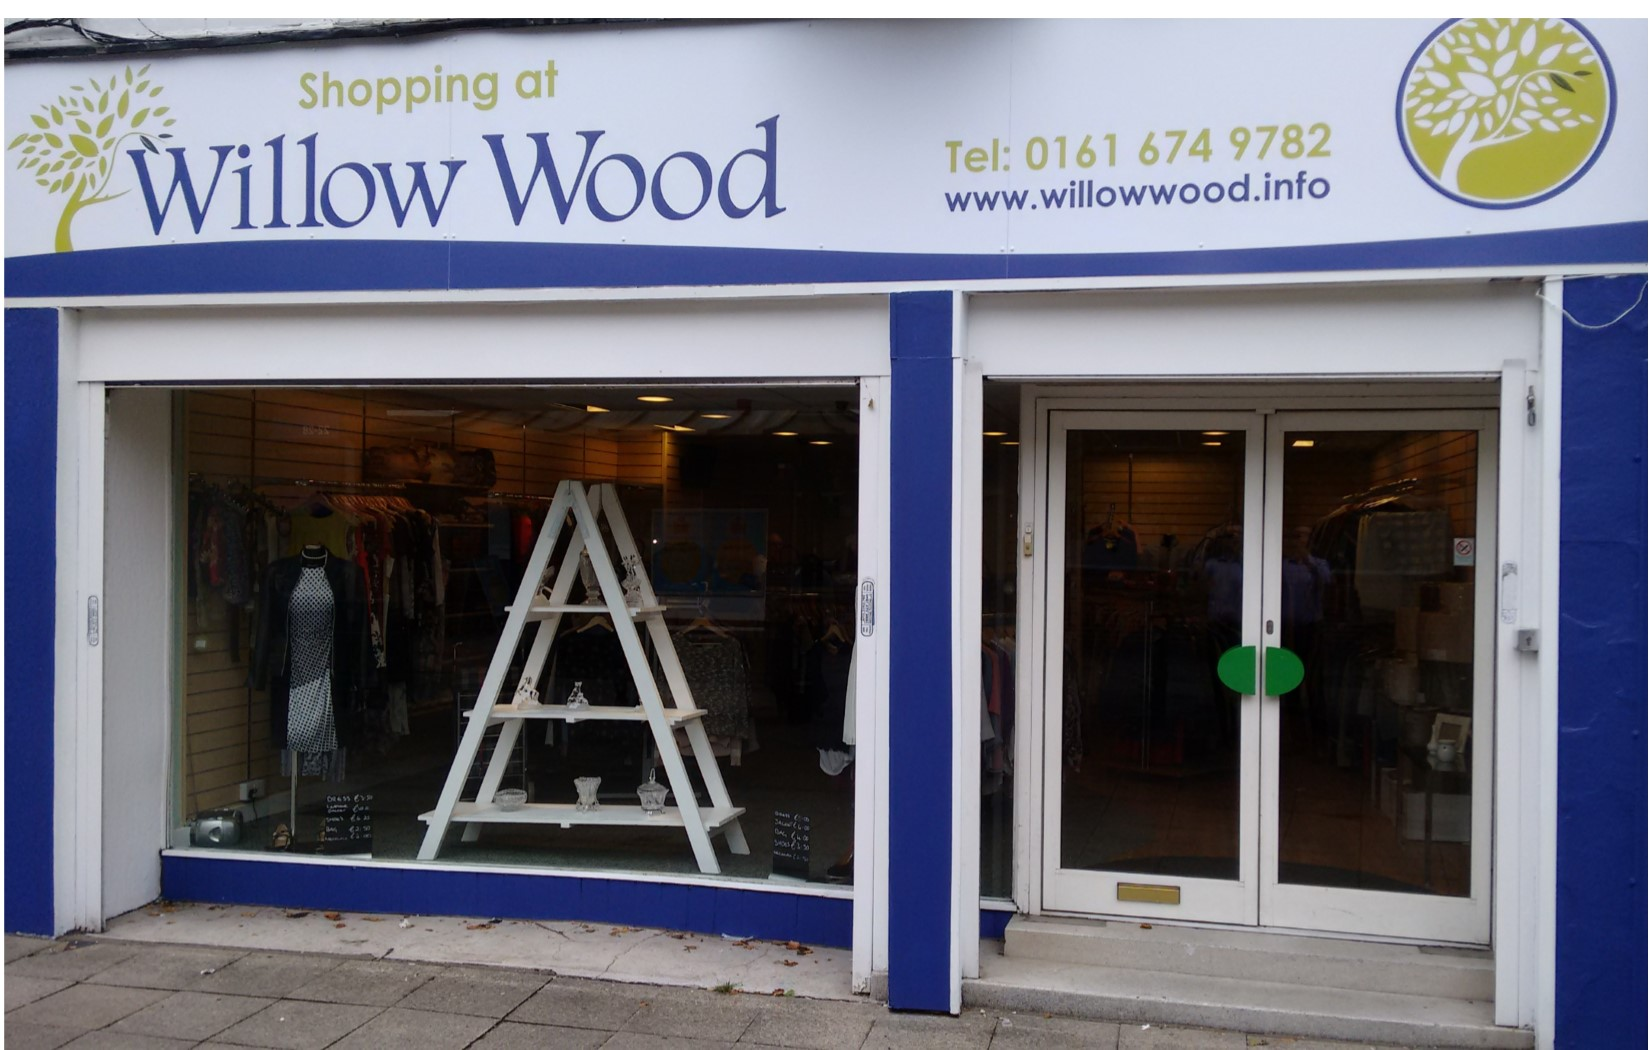 The_new_Willow_Wood_shop_in_Hyde.jpg